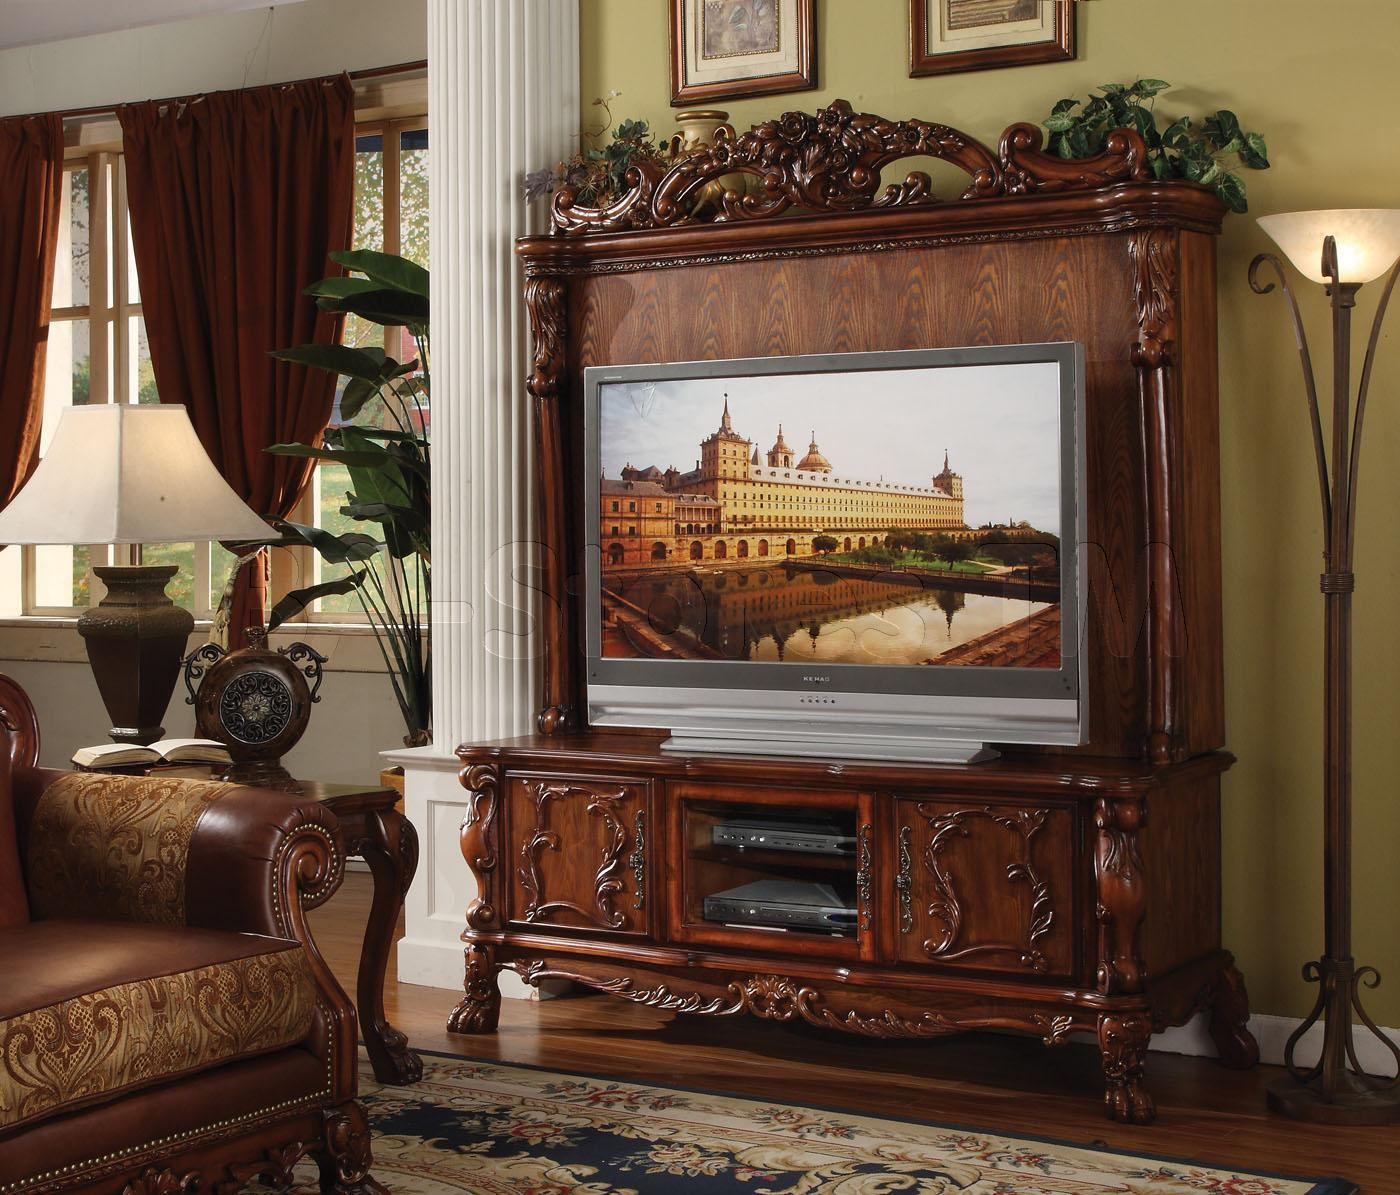 Decorative Cherry Wood Entertaining Furniture With Grey Large Tv And Storage Place On Bottom Part